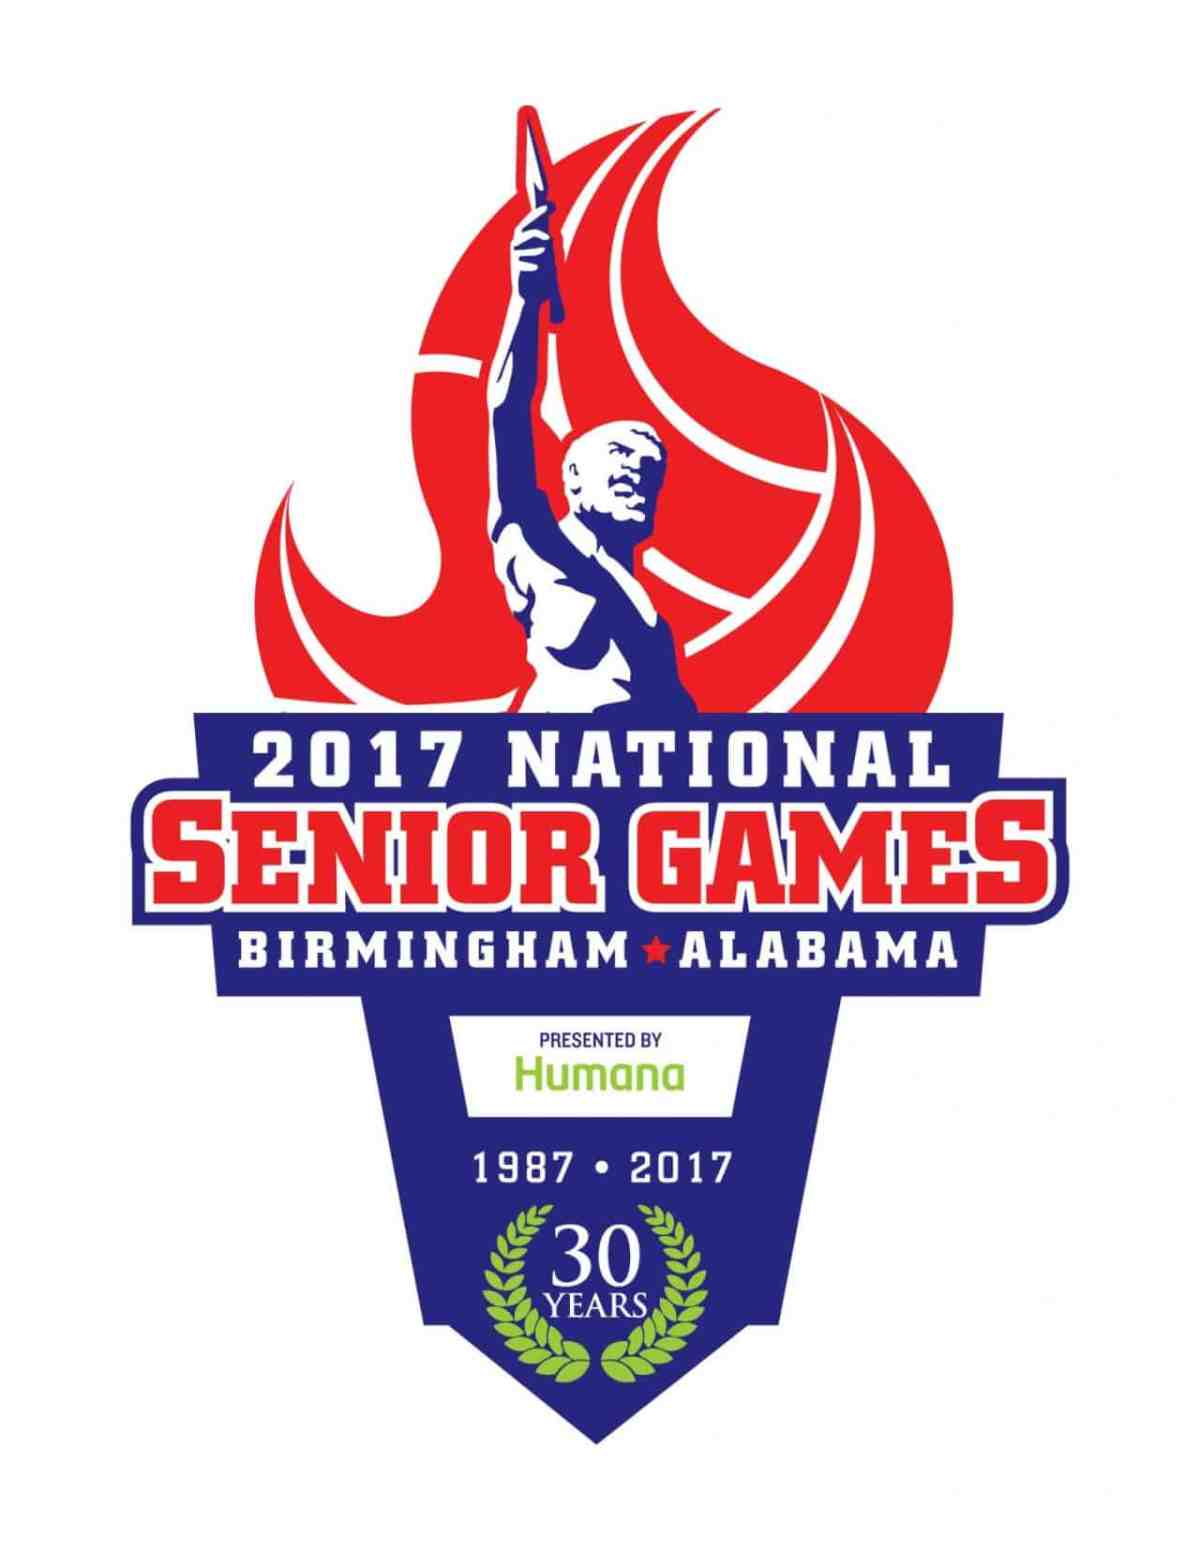 Mid 2017 will Host Quite the Showdown in Birmingham – the National Senior Games